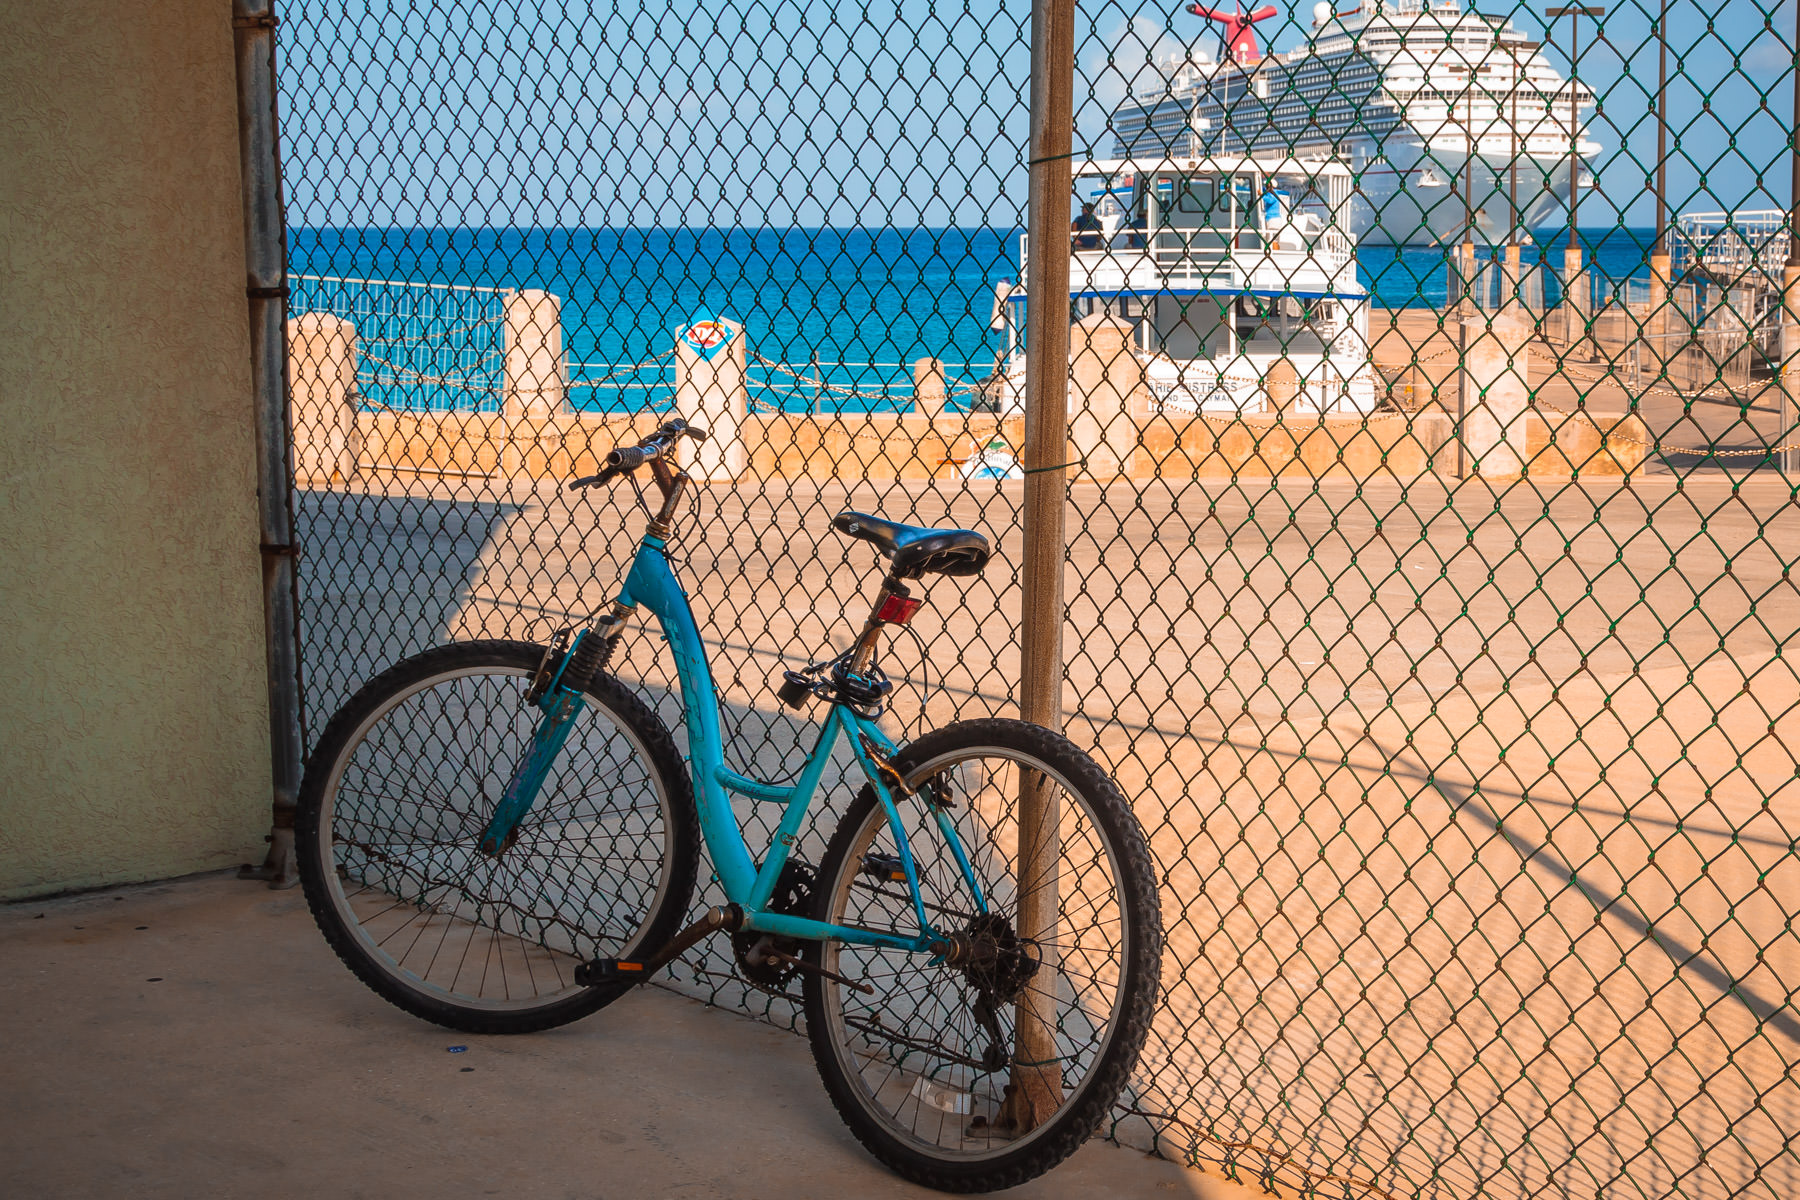 A bicycle leans against a fence in George Town, Grand Cayman.